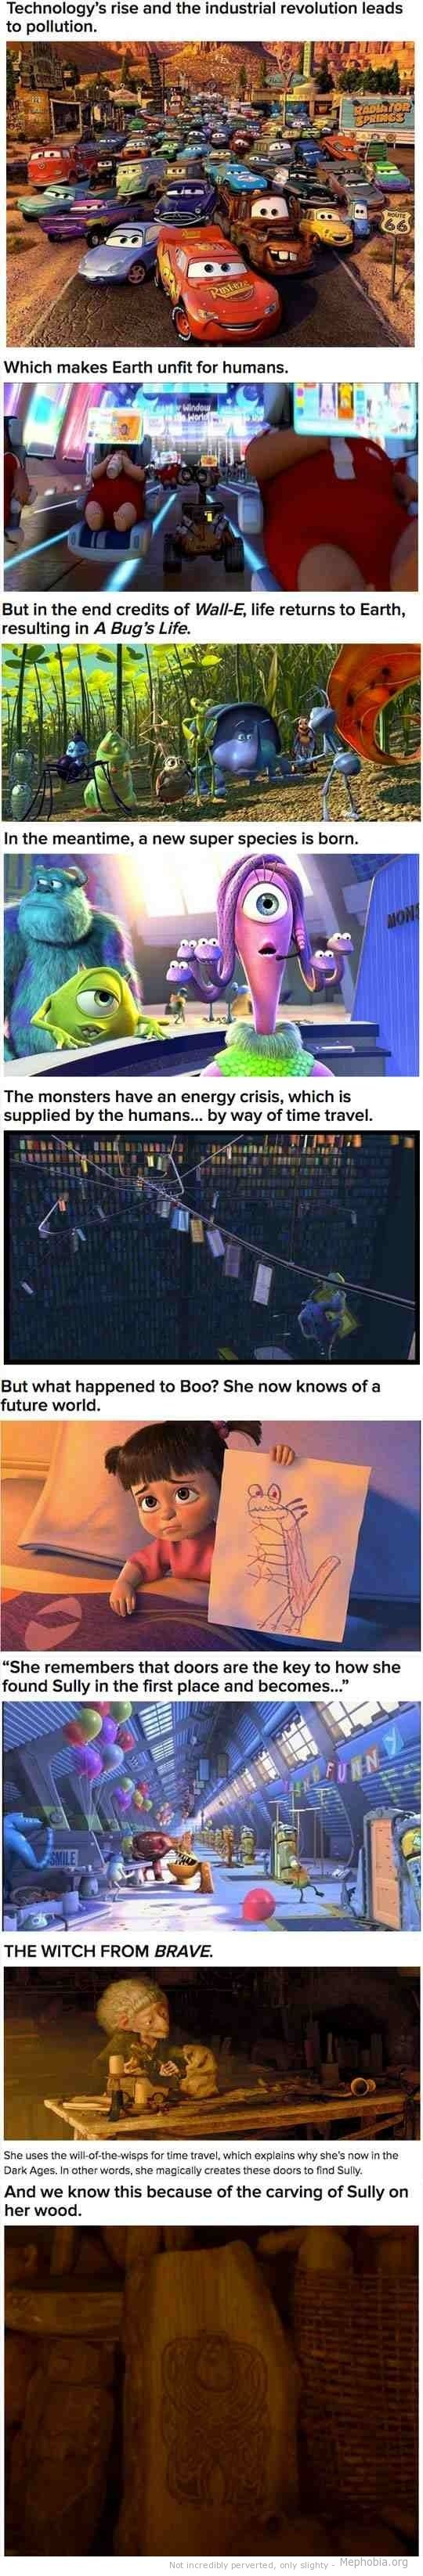 Pixar theory explained more easily